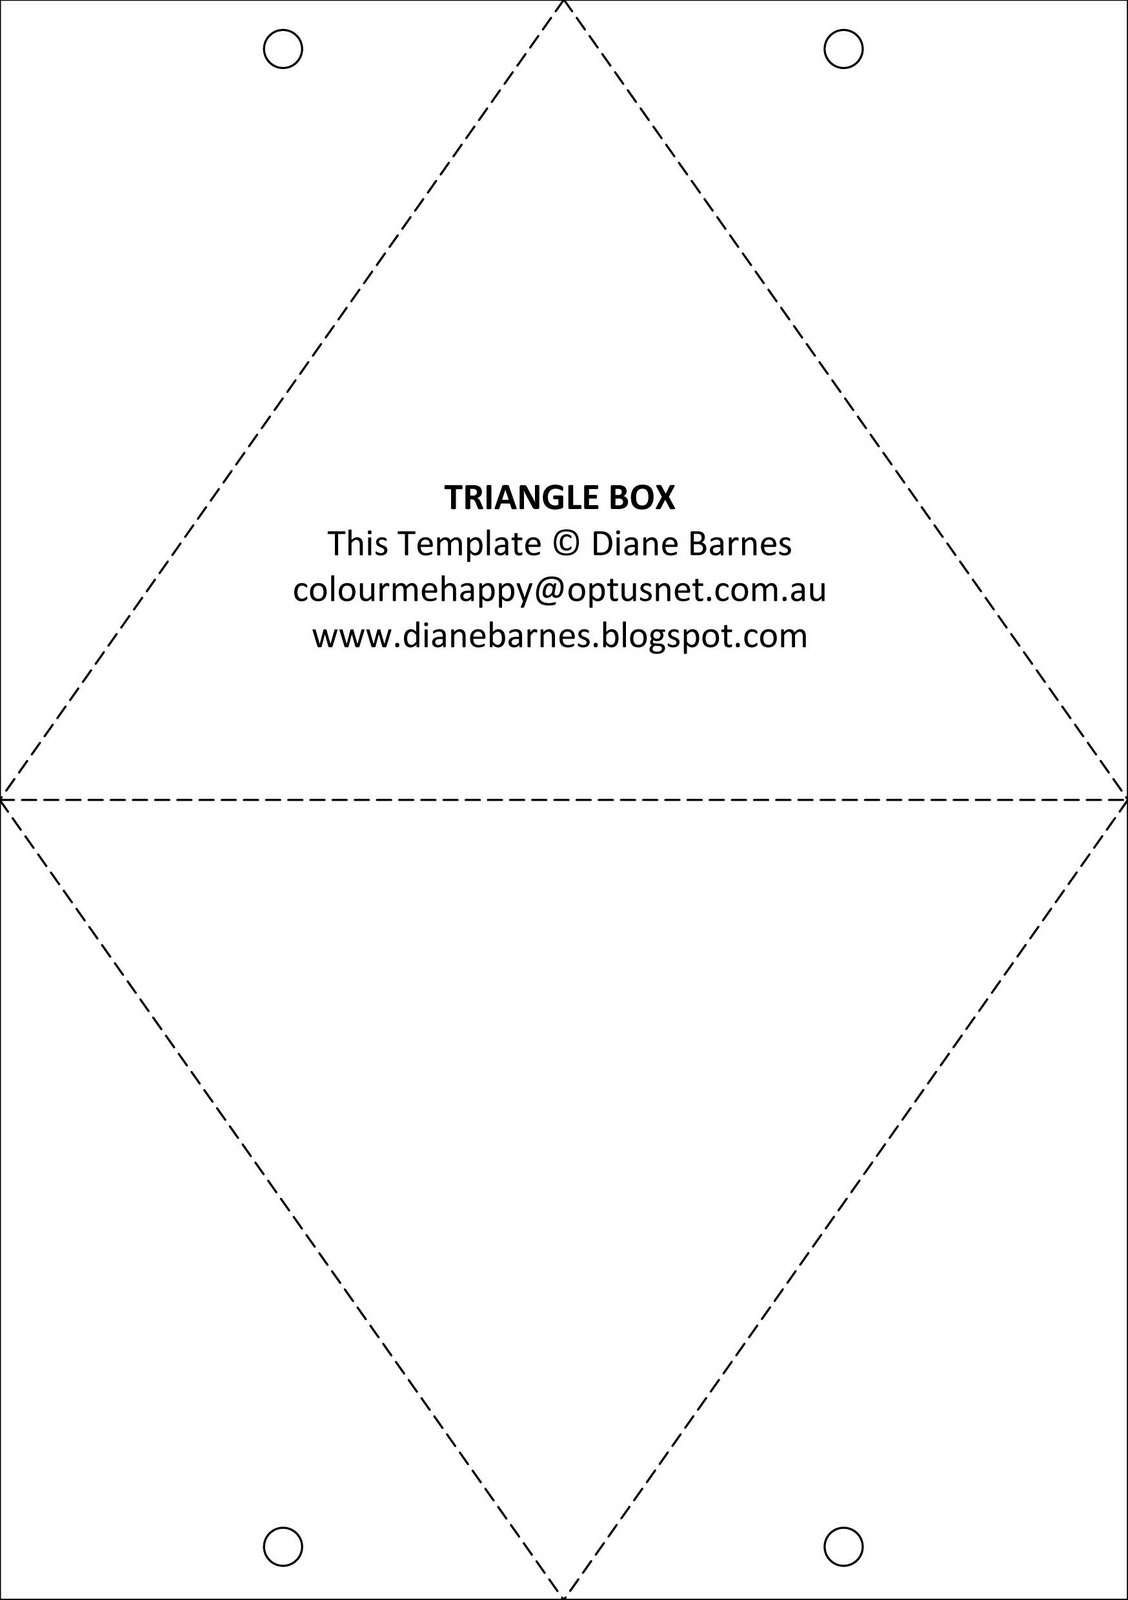 Colour me happy cupcake triangle box for Triangle packaging template